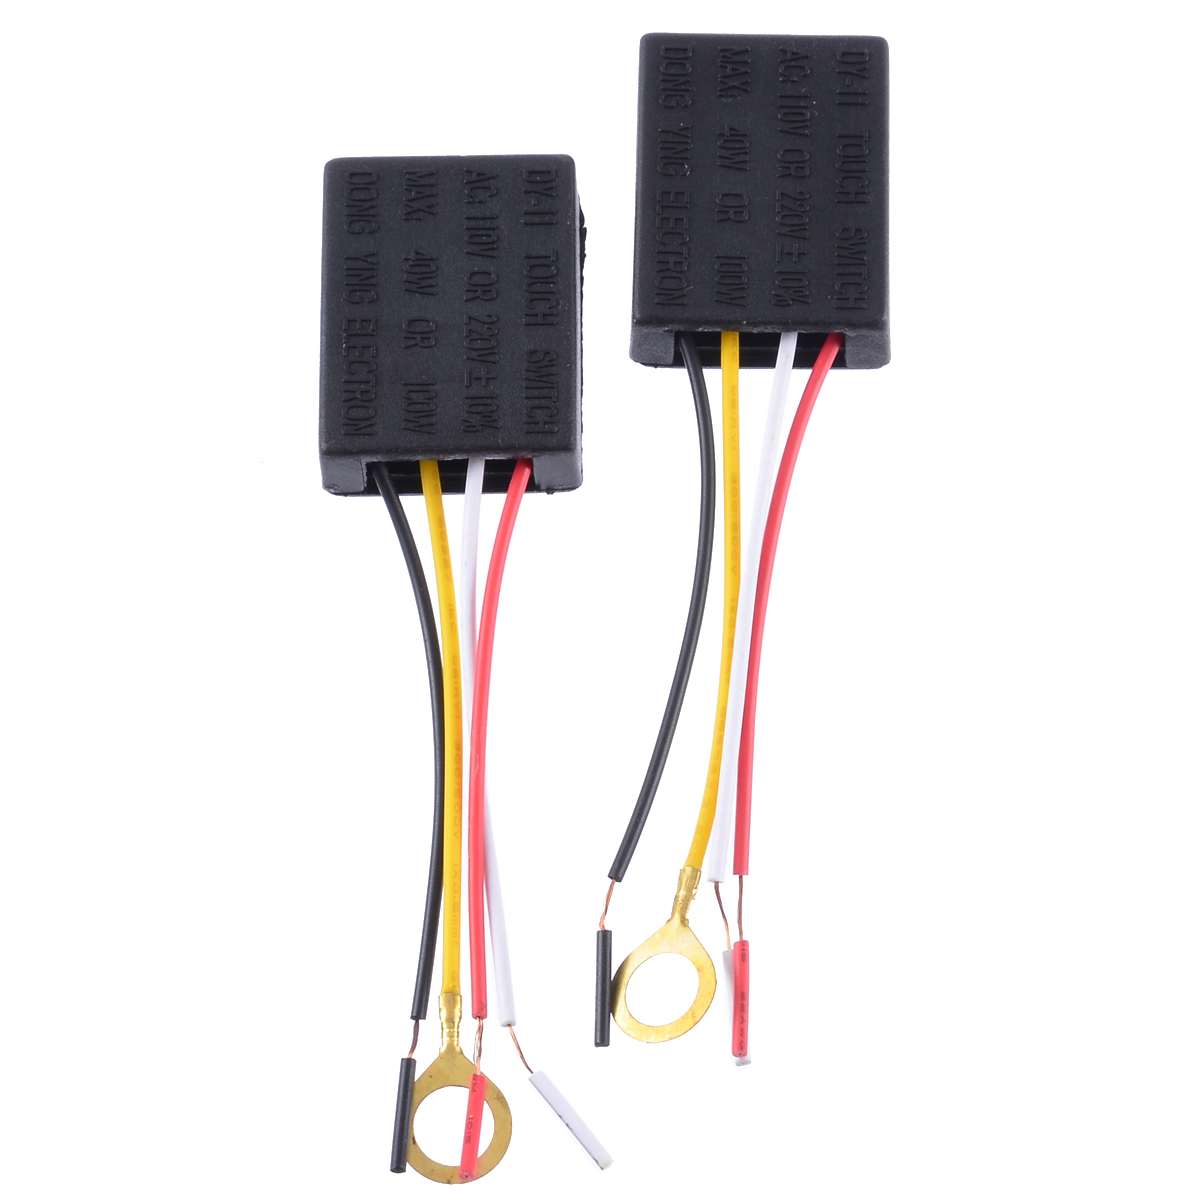 medium resolution of 2pcs 3 way touch sensor switch control bulb control dimmer switch part for desk lamp ac 100 240v